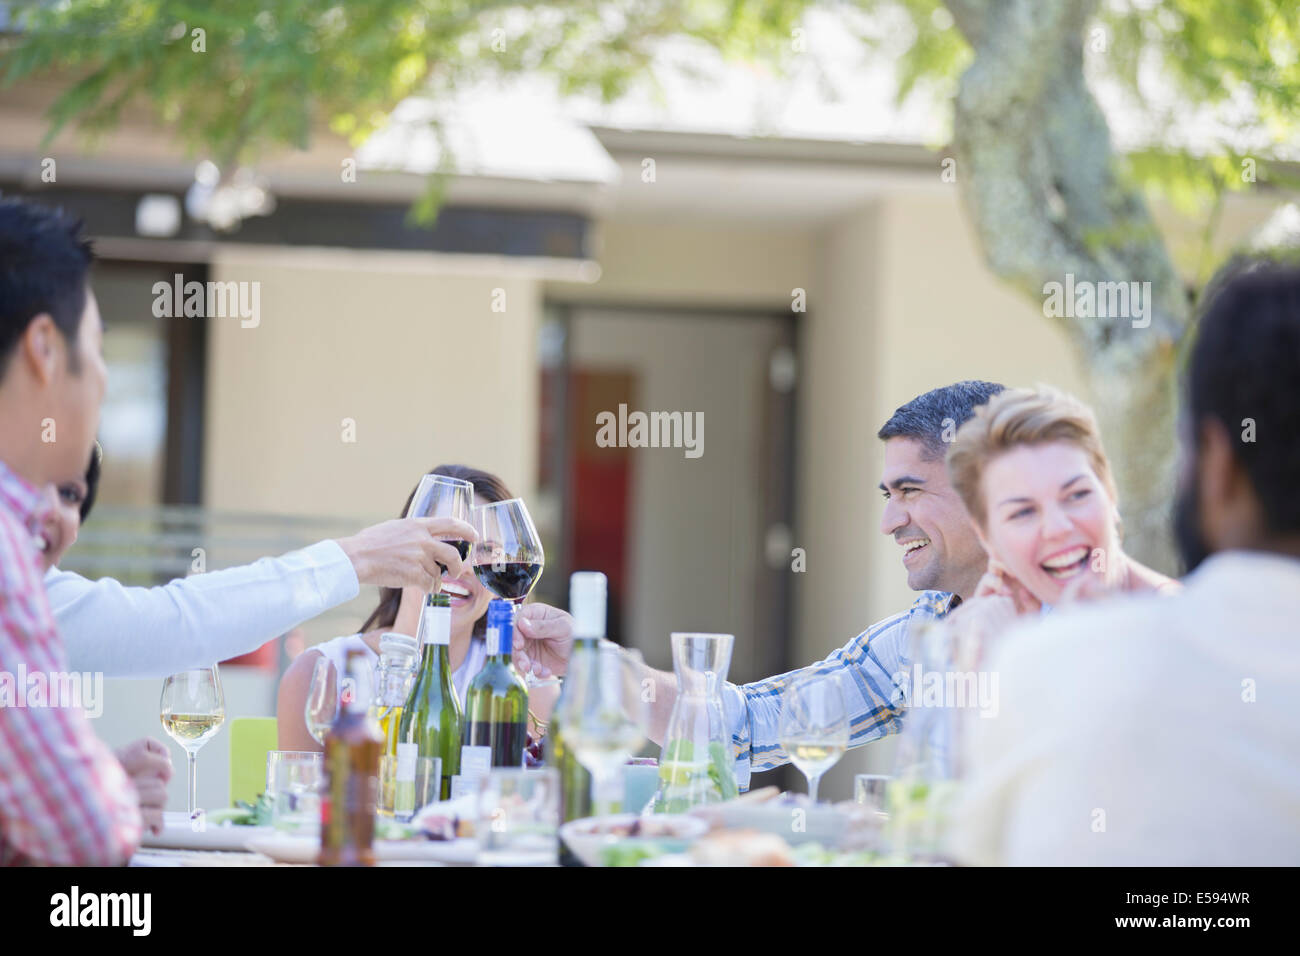 Friends toasting each other at party Photo Stock